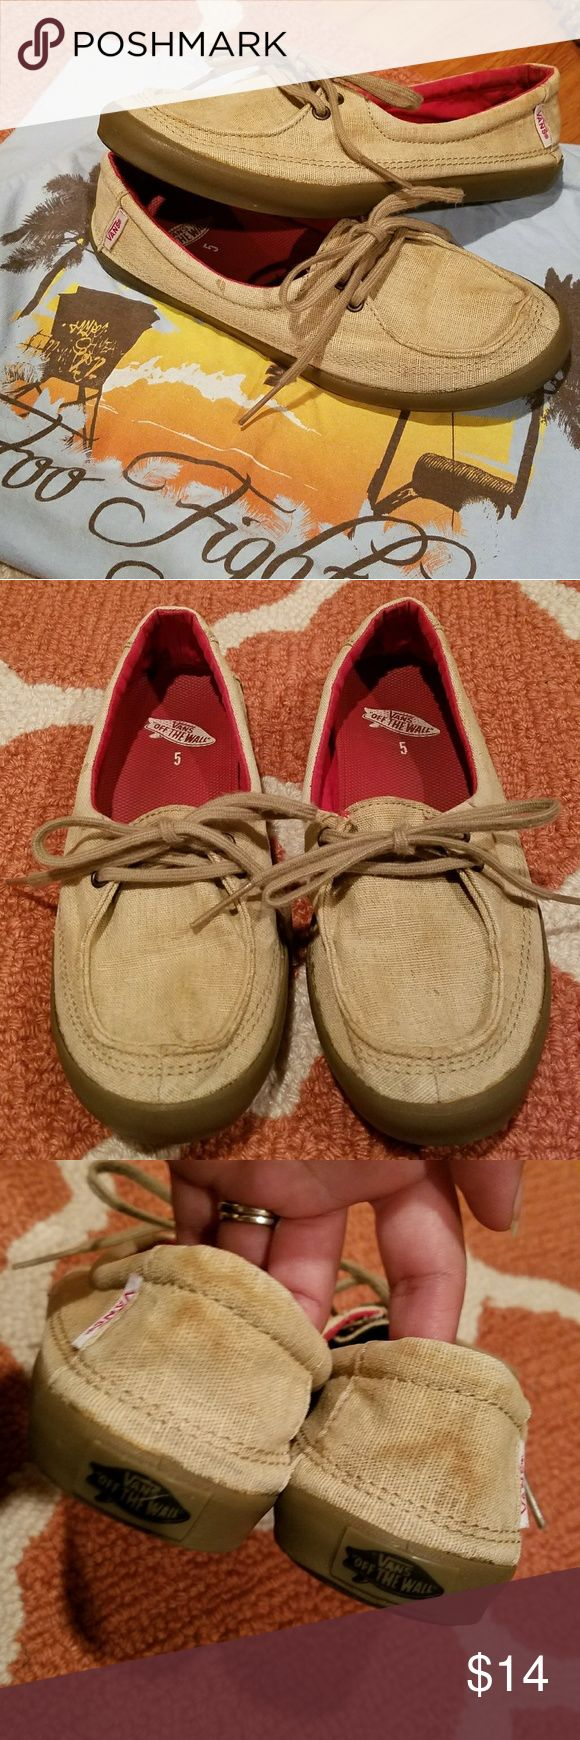 Vans Boat Shoes Gently used slip-on shoes, tan color, burlap-like material. I ran these through the wash, but the color ram a little and stained the back and a little of the toe area.  I loved to wear these shoes with shorts in the summer time, but they are half a size too small for me. They're size 5, true to size.  Accepting offers! Vans Shoes Flats & Loafers